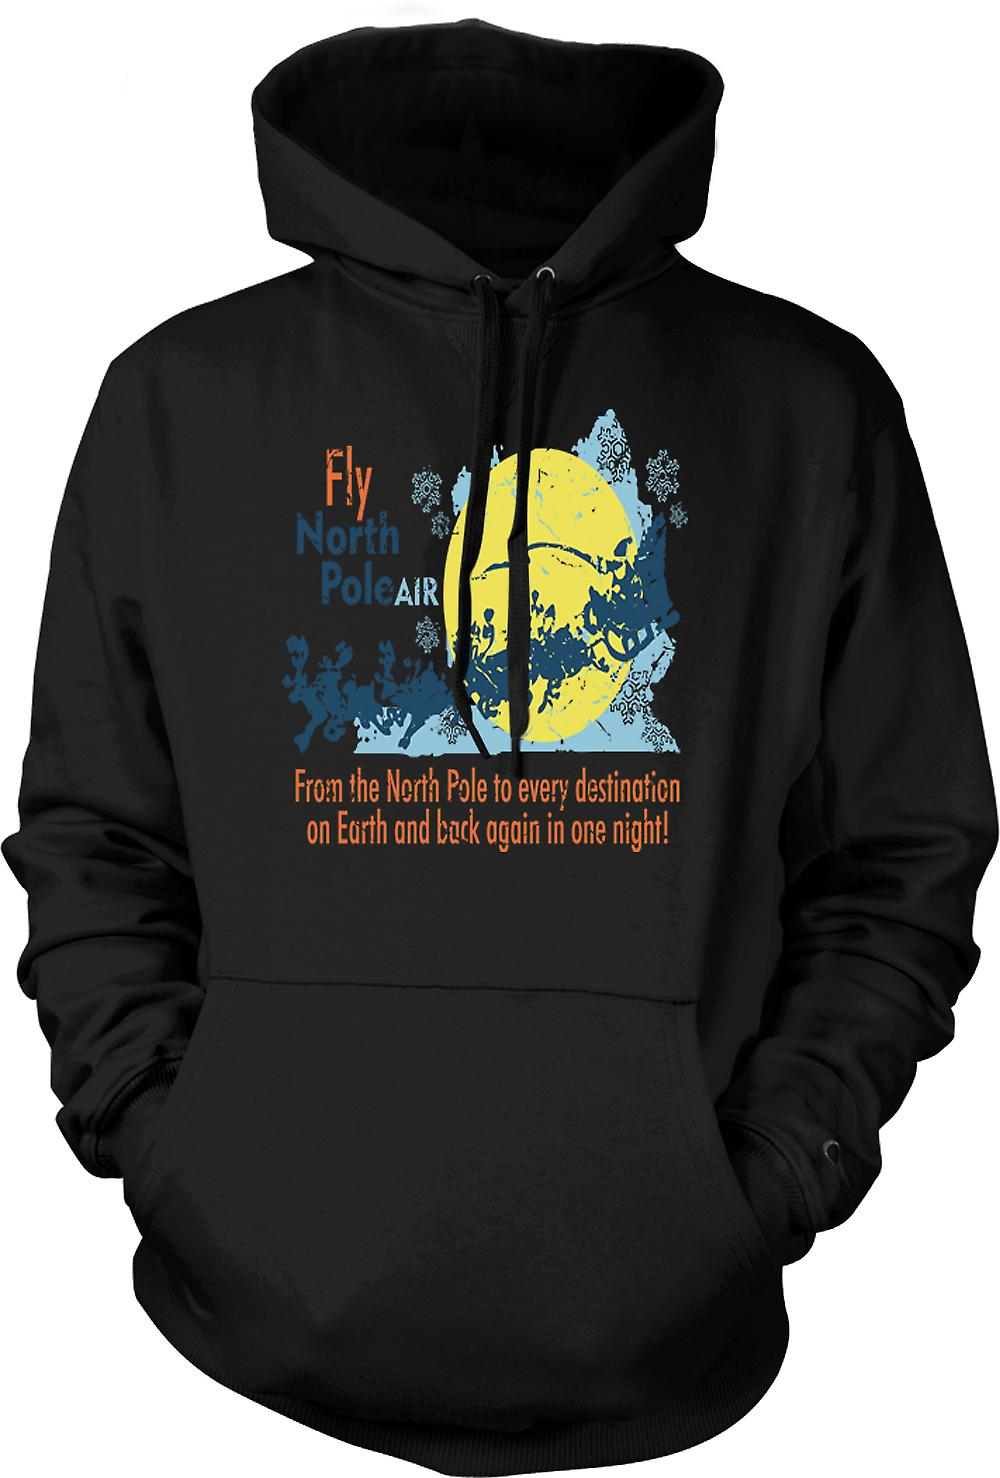 Mens Hoodie - Fly North Pole Air - Funny Santa